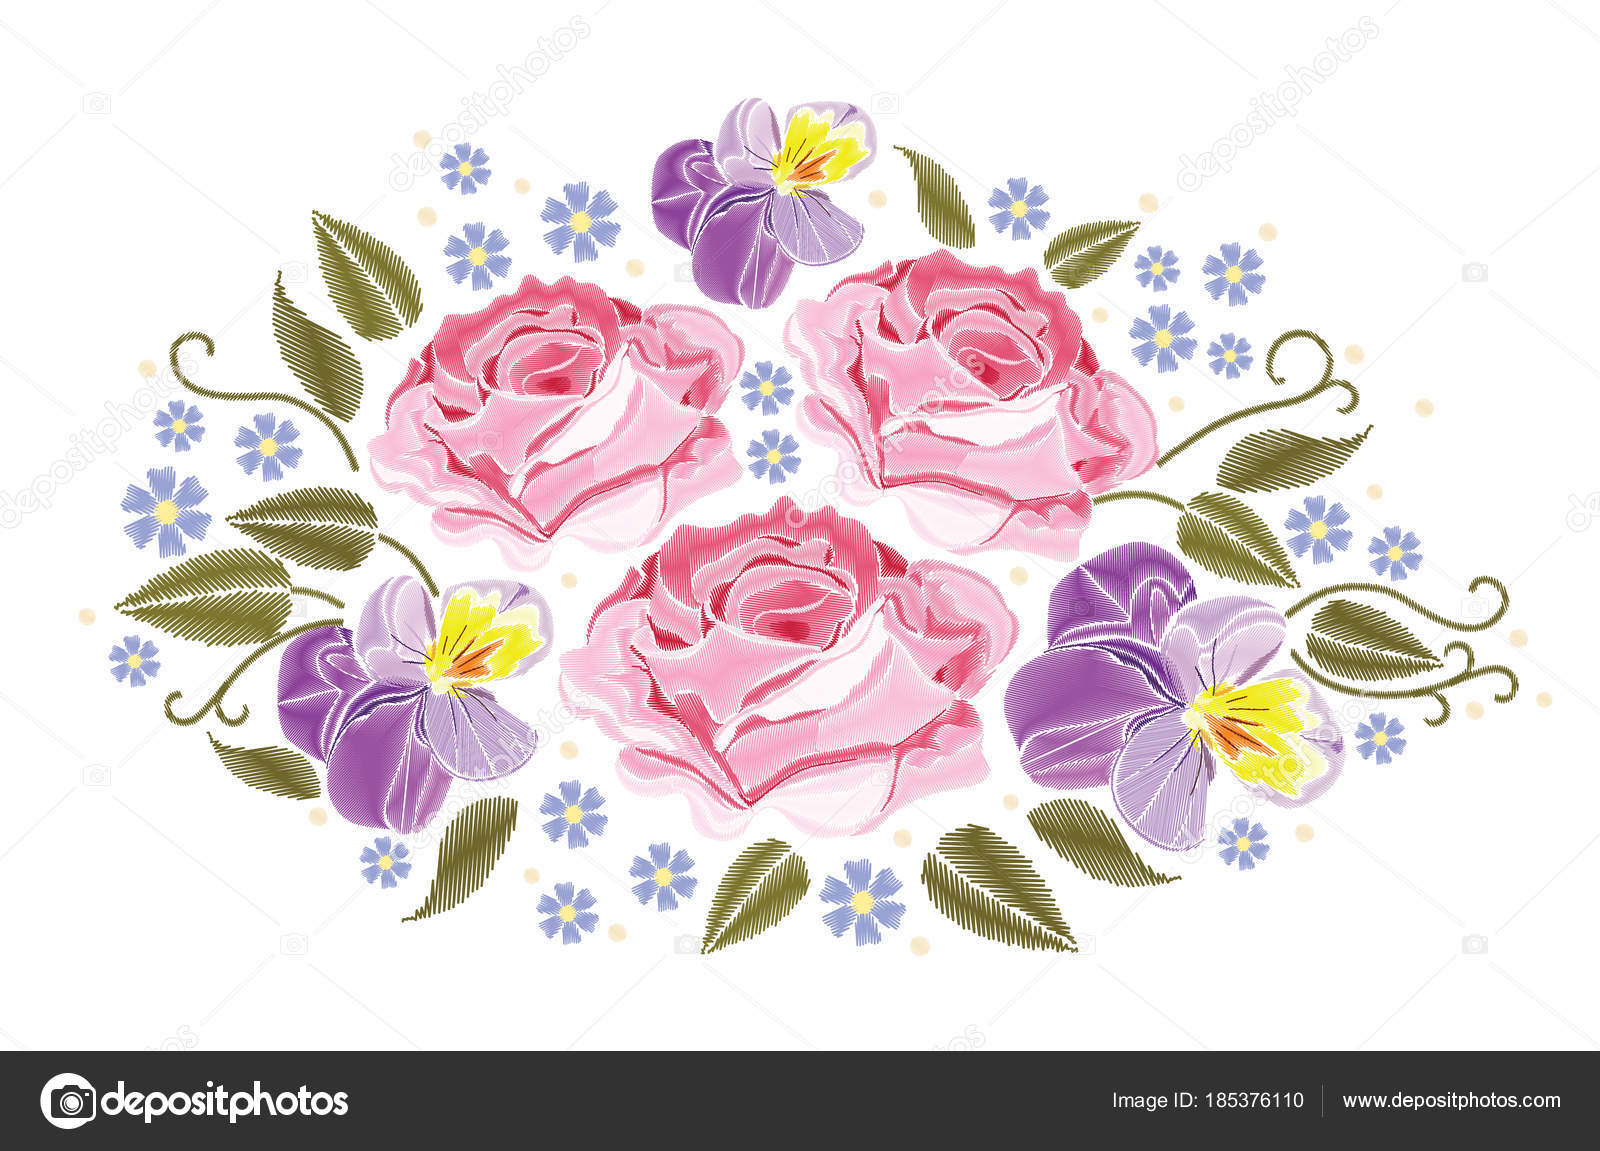 flowers roses and pansies isolated on white background. vector